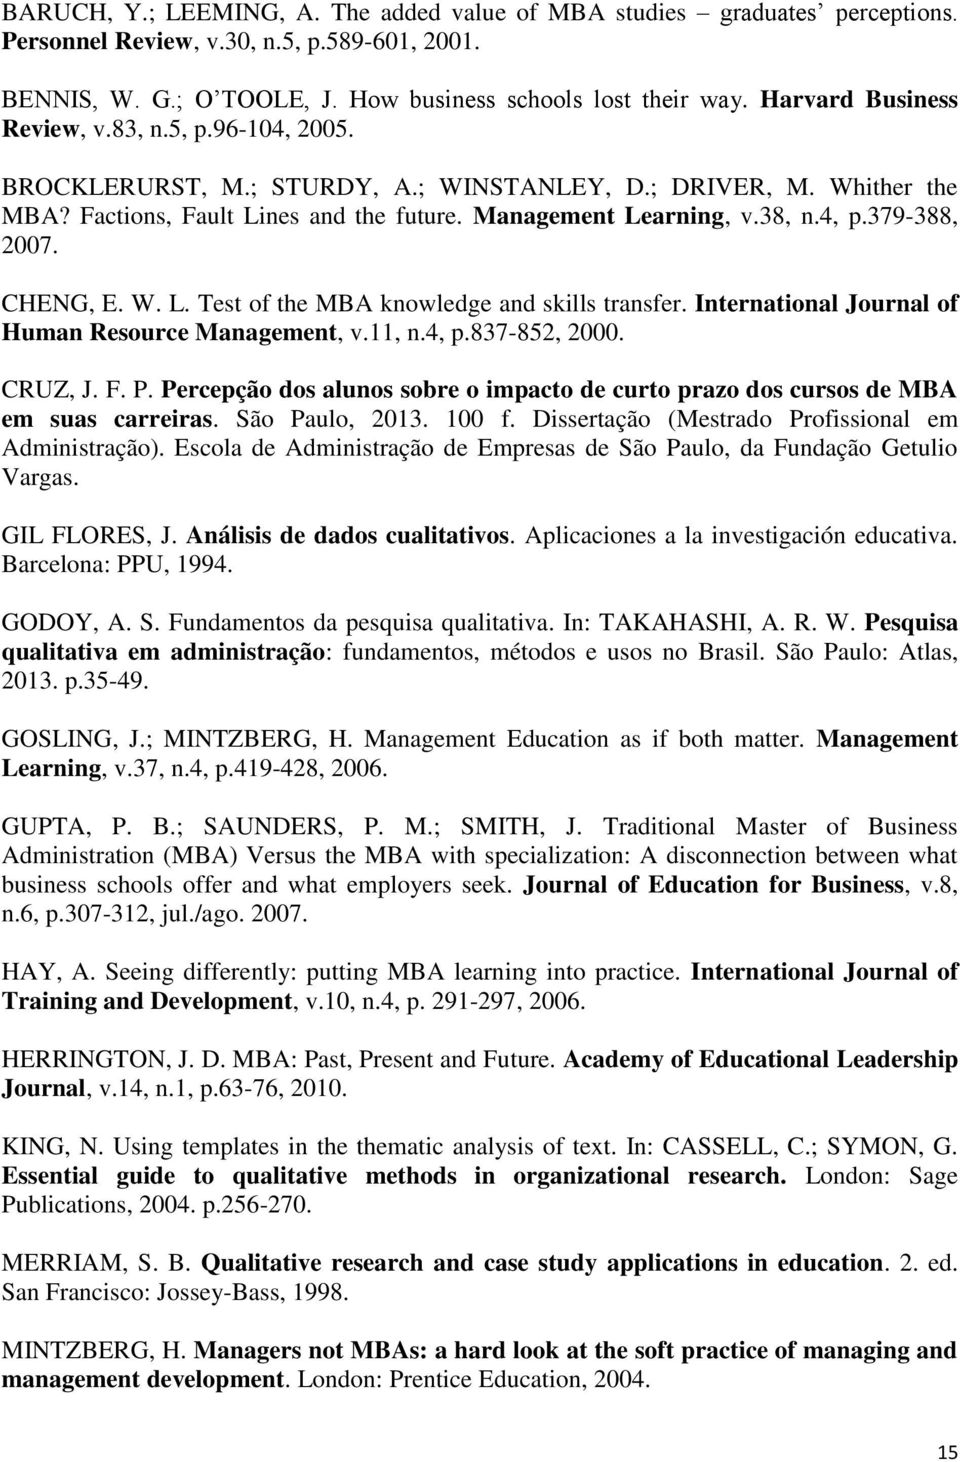 379-388, 2007. CHENG, E. W. L. Test of the MBA knowledge and skills transfer. International Journal of Human Resource Management, v.11, n.4, p.837-852, 2000. CRUZ, J. F. P.